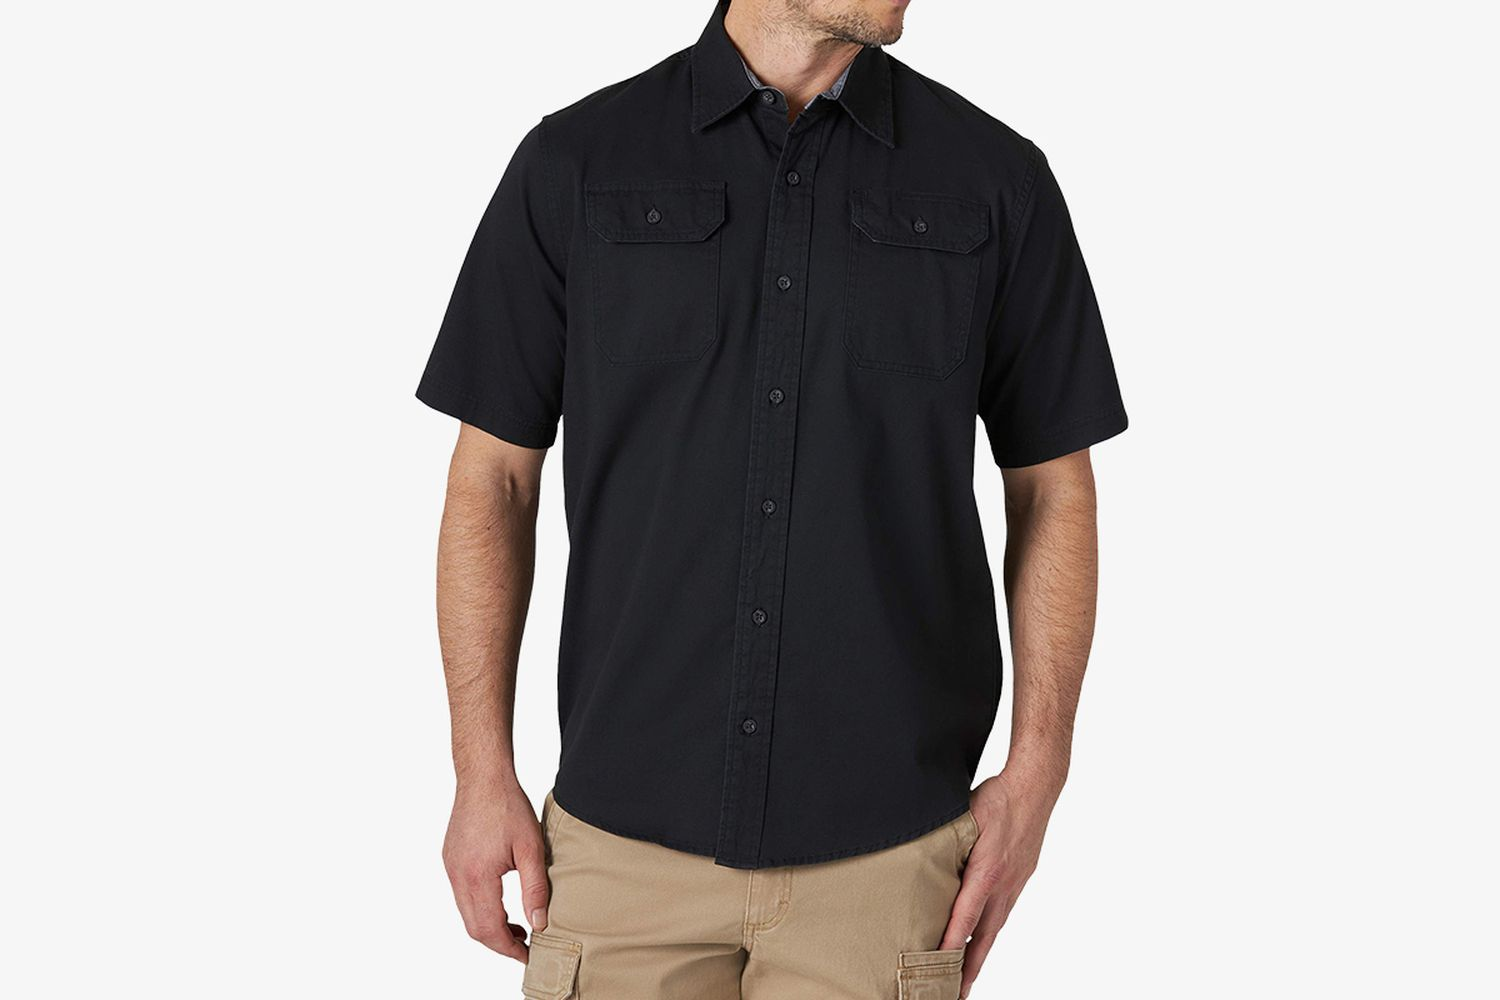 Short Sleeve Comfort Stretch Woven Shirt